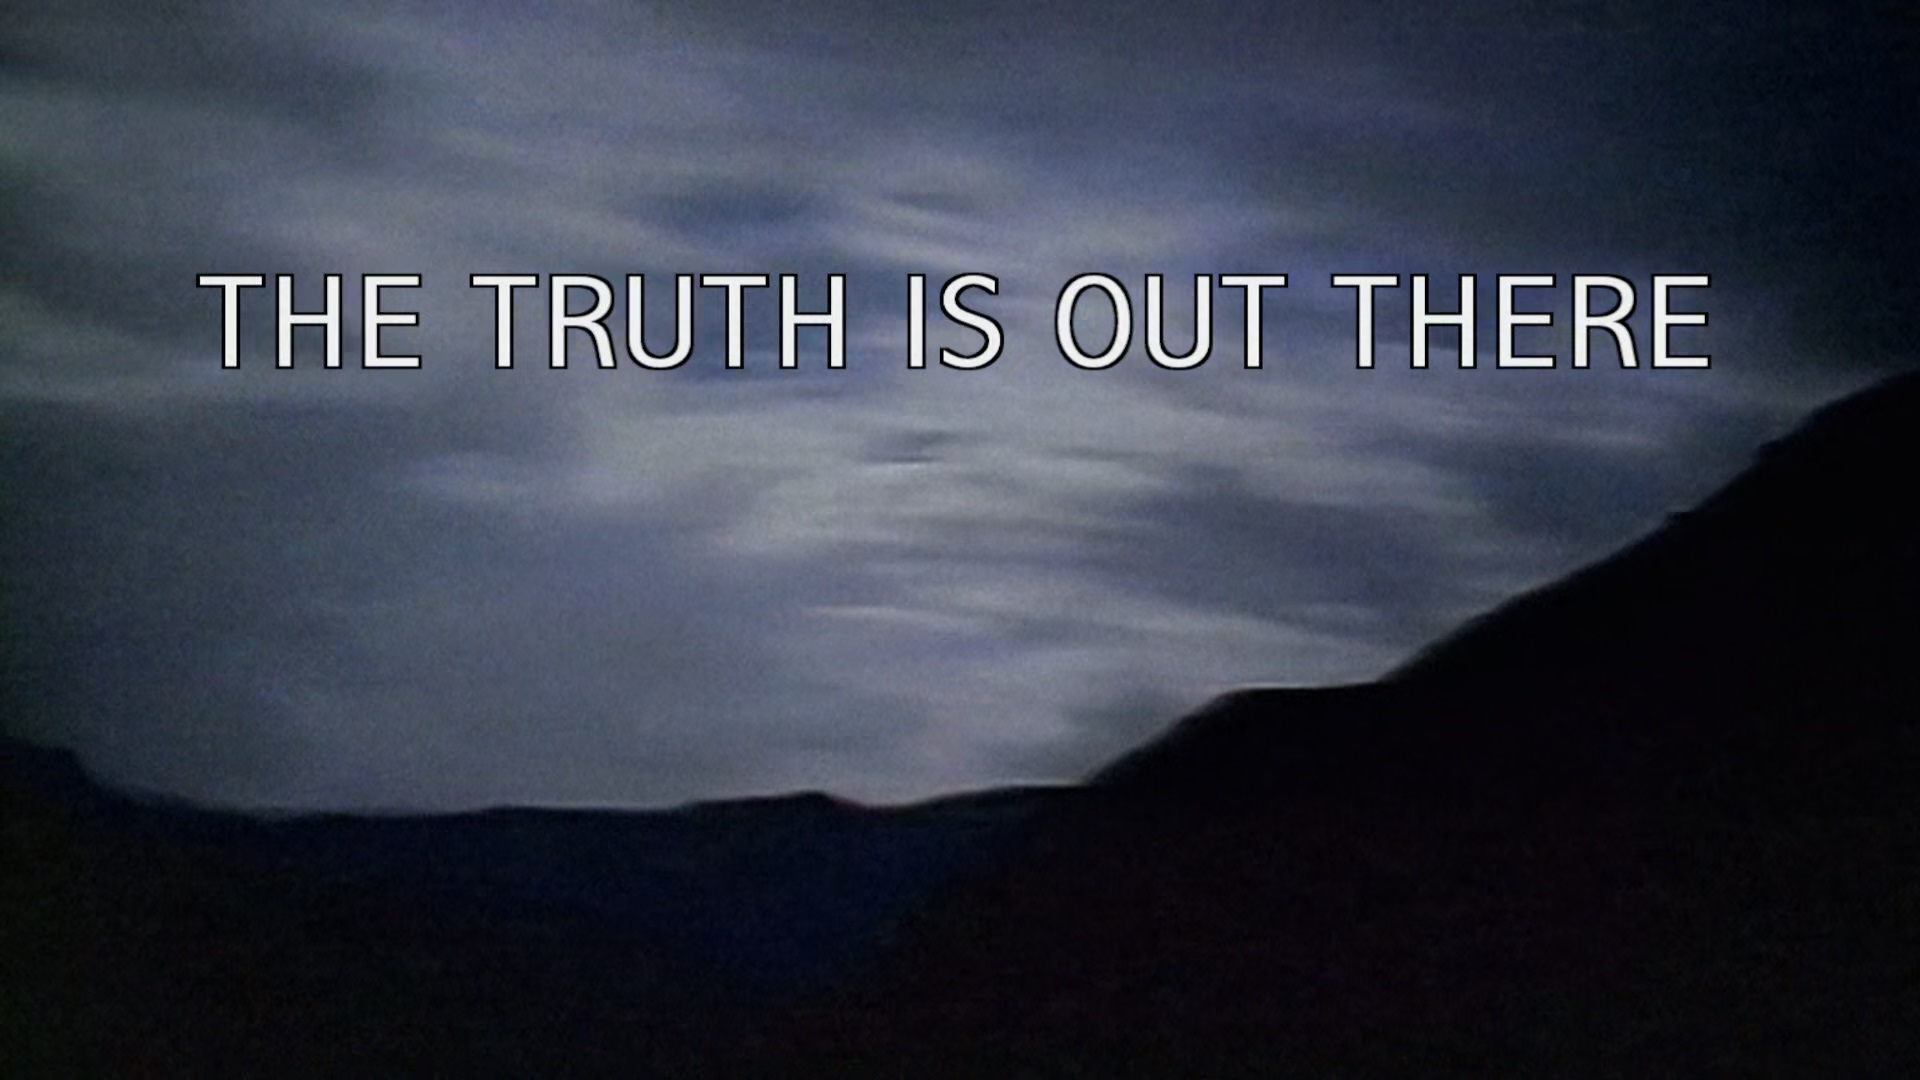 The most commonly used tagline of The X-Files episodes X Files Deny Everything